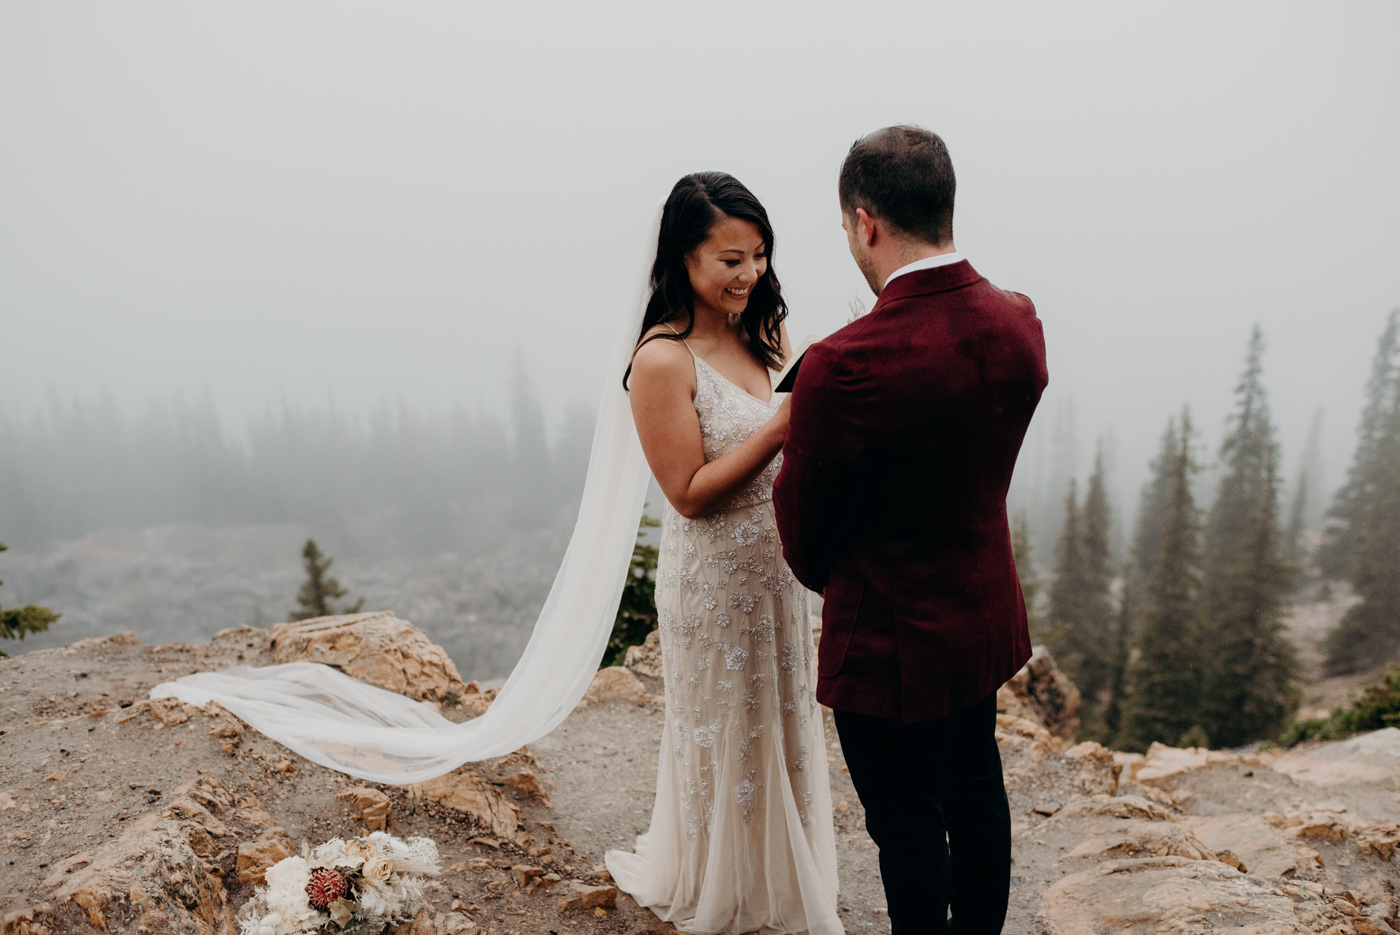 bride smiling and reading vows to groom in the mountains